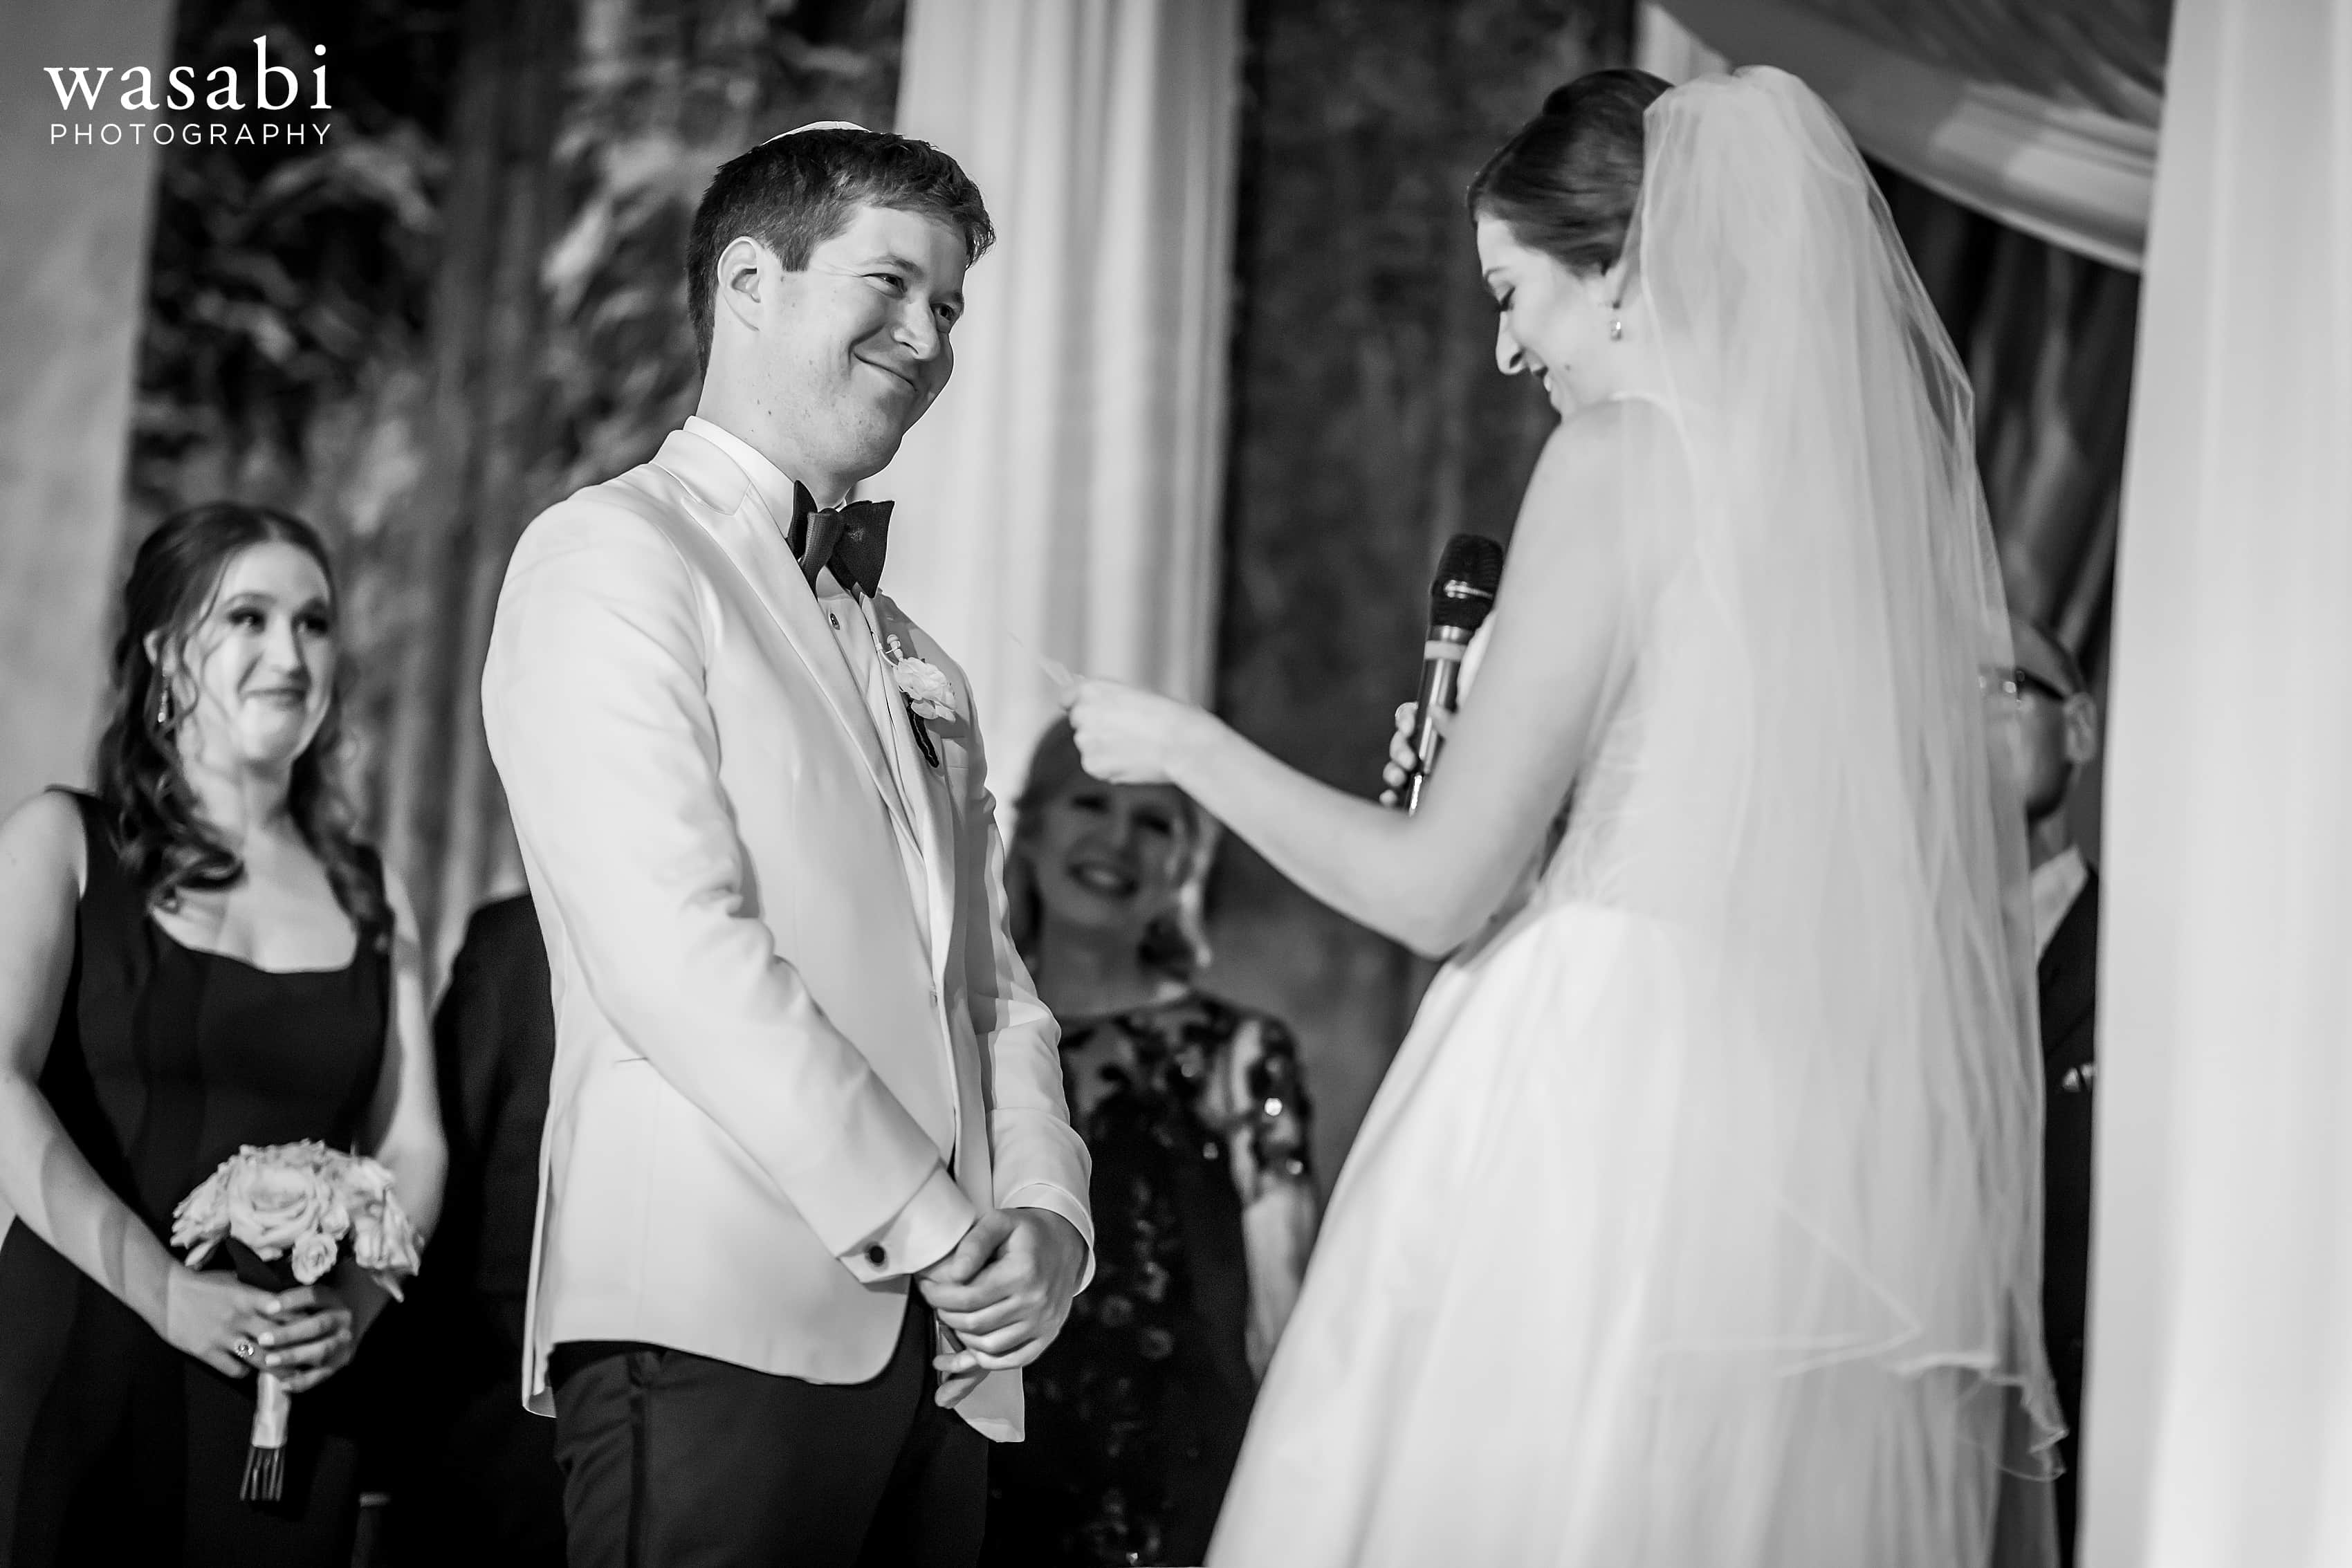 bride smiles at bride during vows in Jewish wedding ceremony at InterContinental Chicago Magnificent Mile Hotel